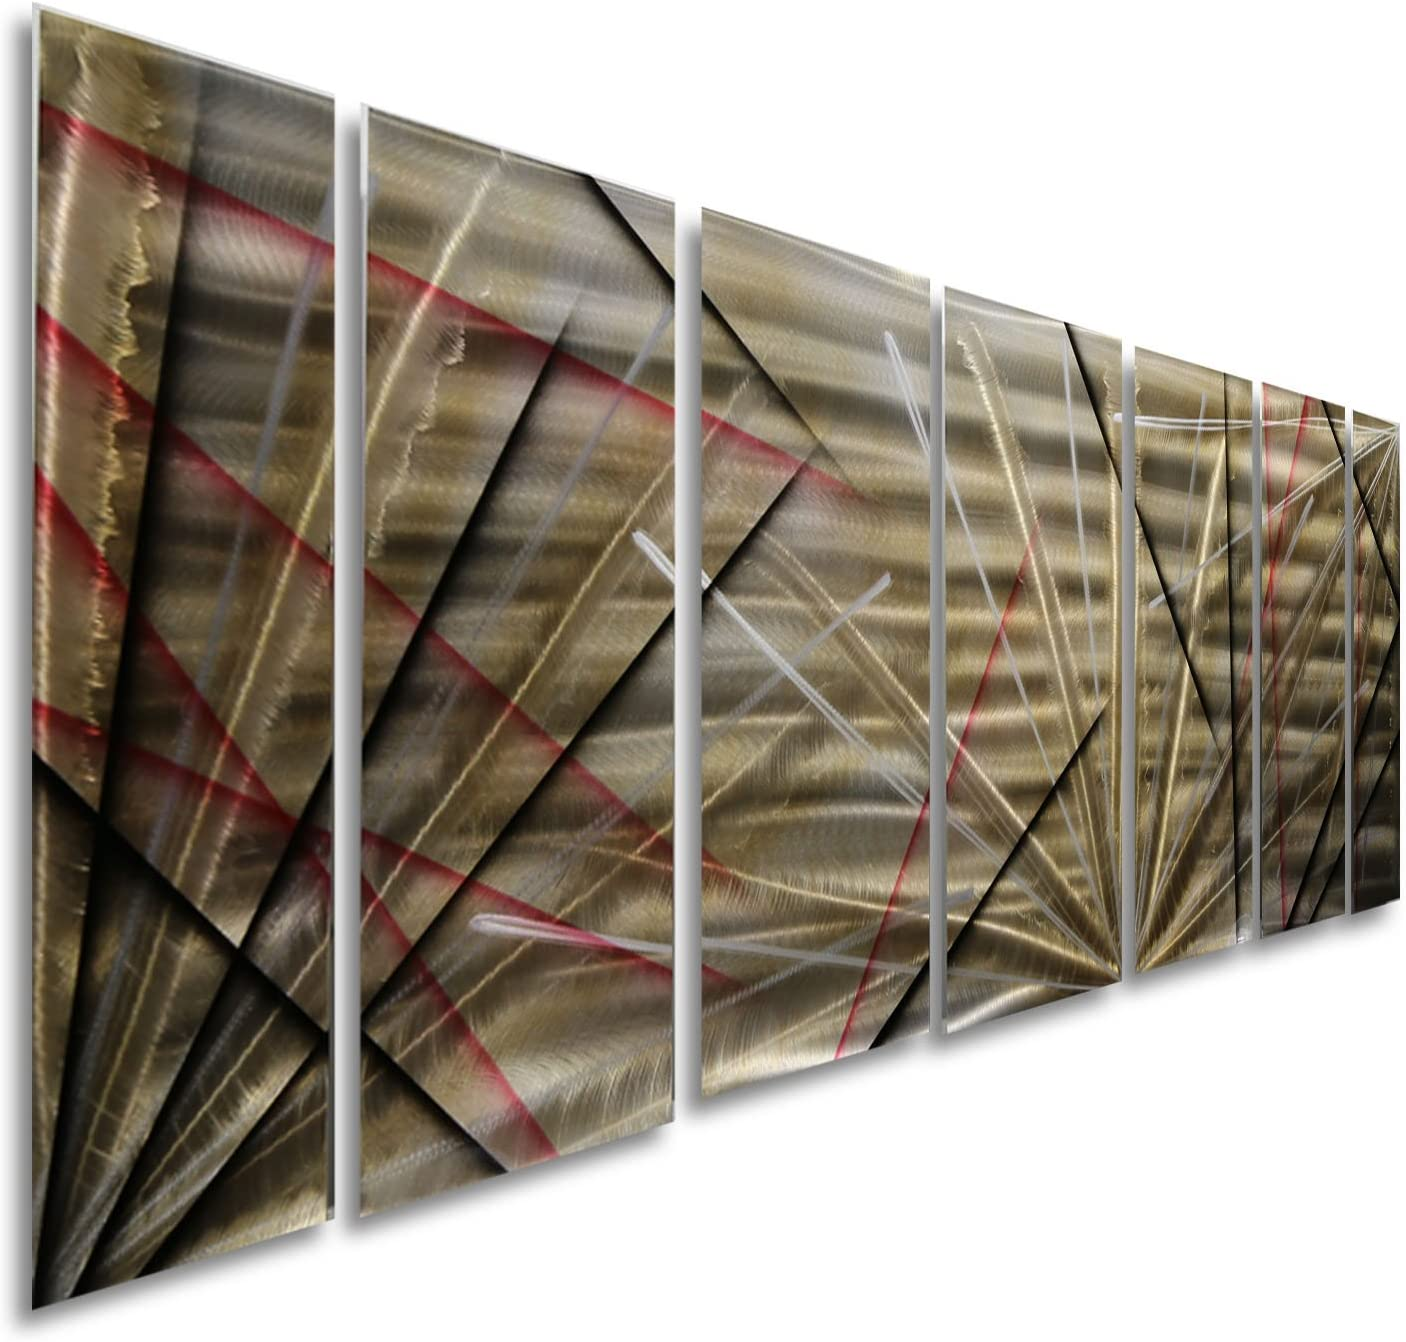 """Statements2000Abstract Large Metal Wall Art Hanging Panels Sculpture 3D Painting by Jon Allen, Gold/Silver/Black/Red, 68"""" x 24"""" - Meteor Eclipse"""